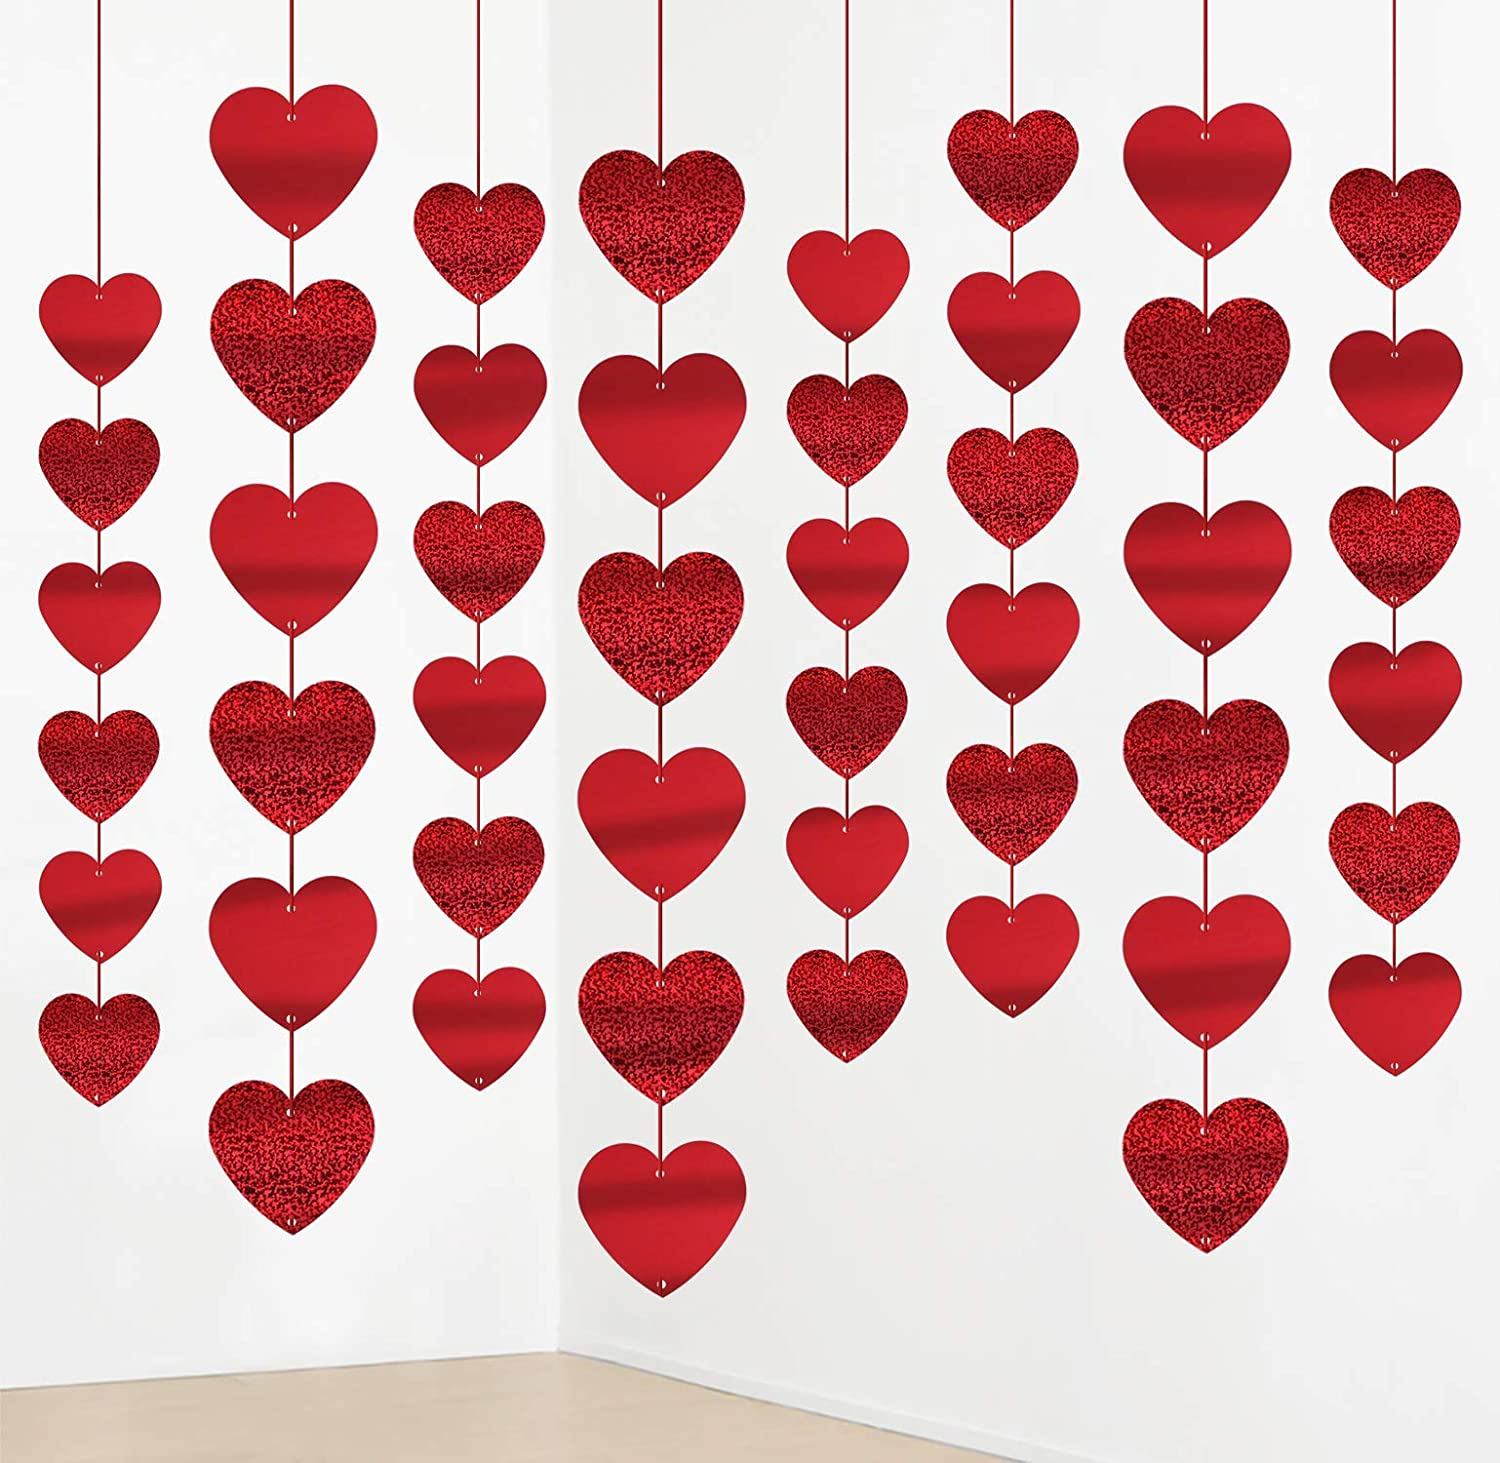 jollylife 12PCS Valentine's Day Decorations Heart Garland - Party Hanging String Decor Supplies